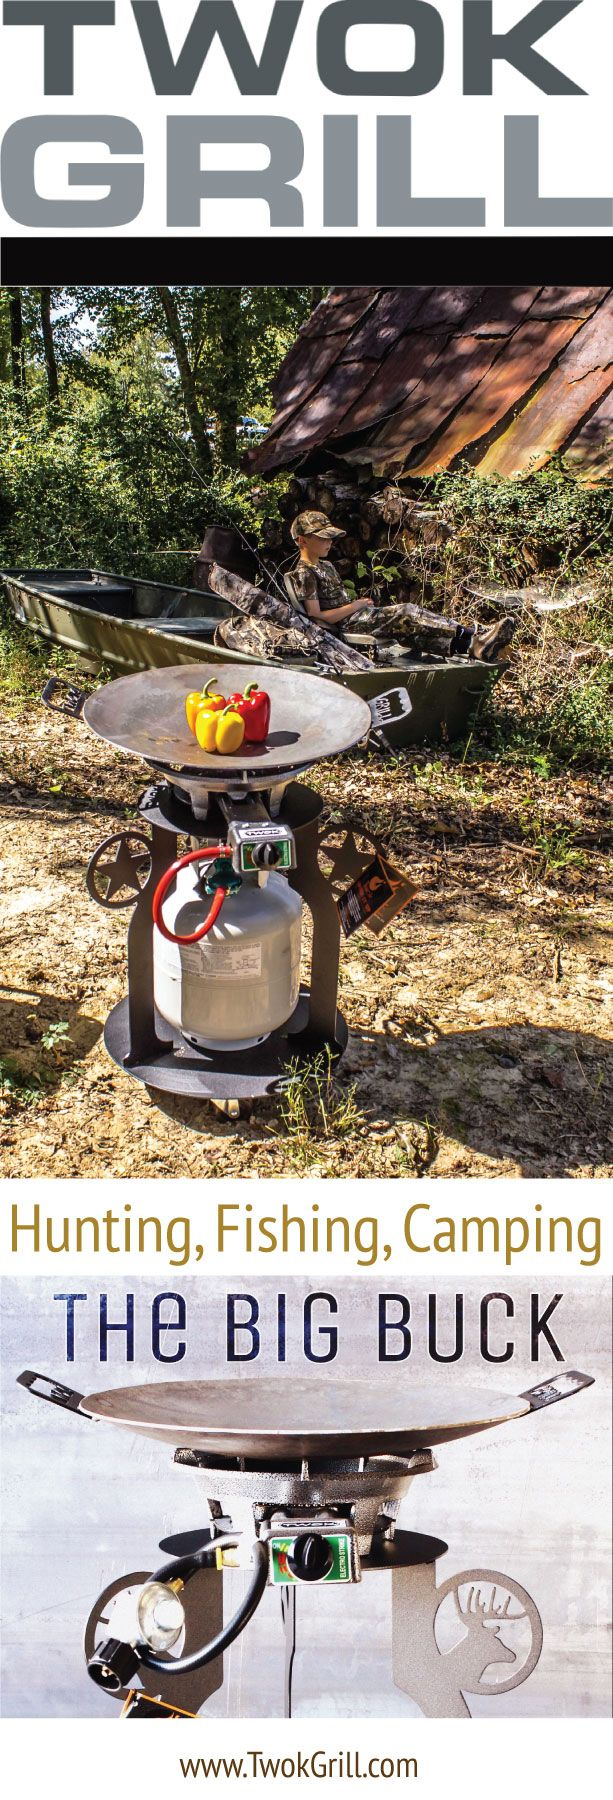 twok grill the perfect tool for all your outdoor grilling needs